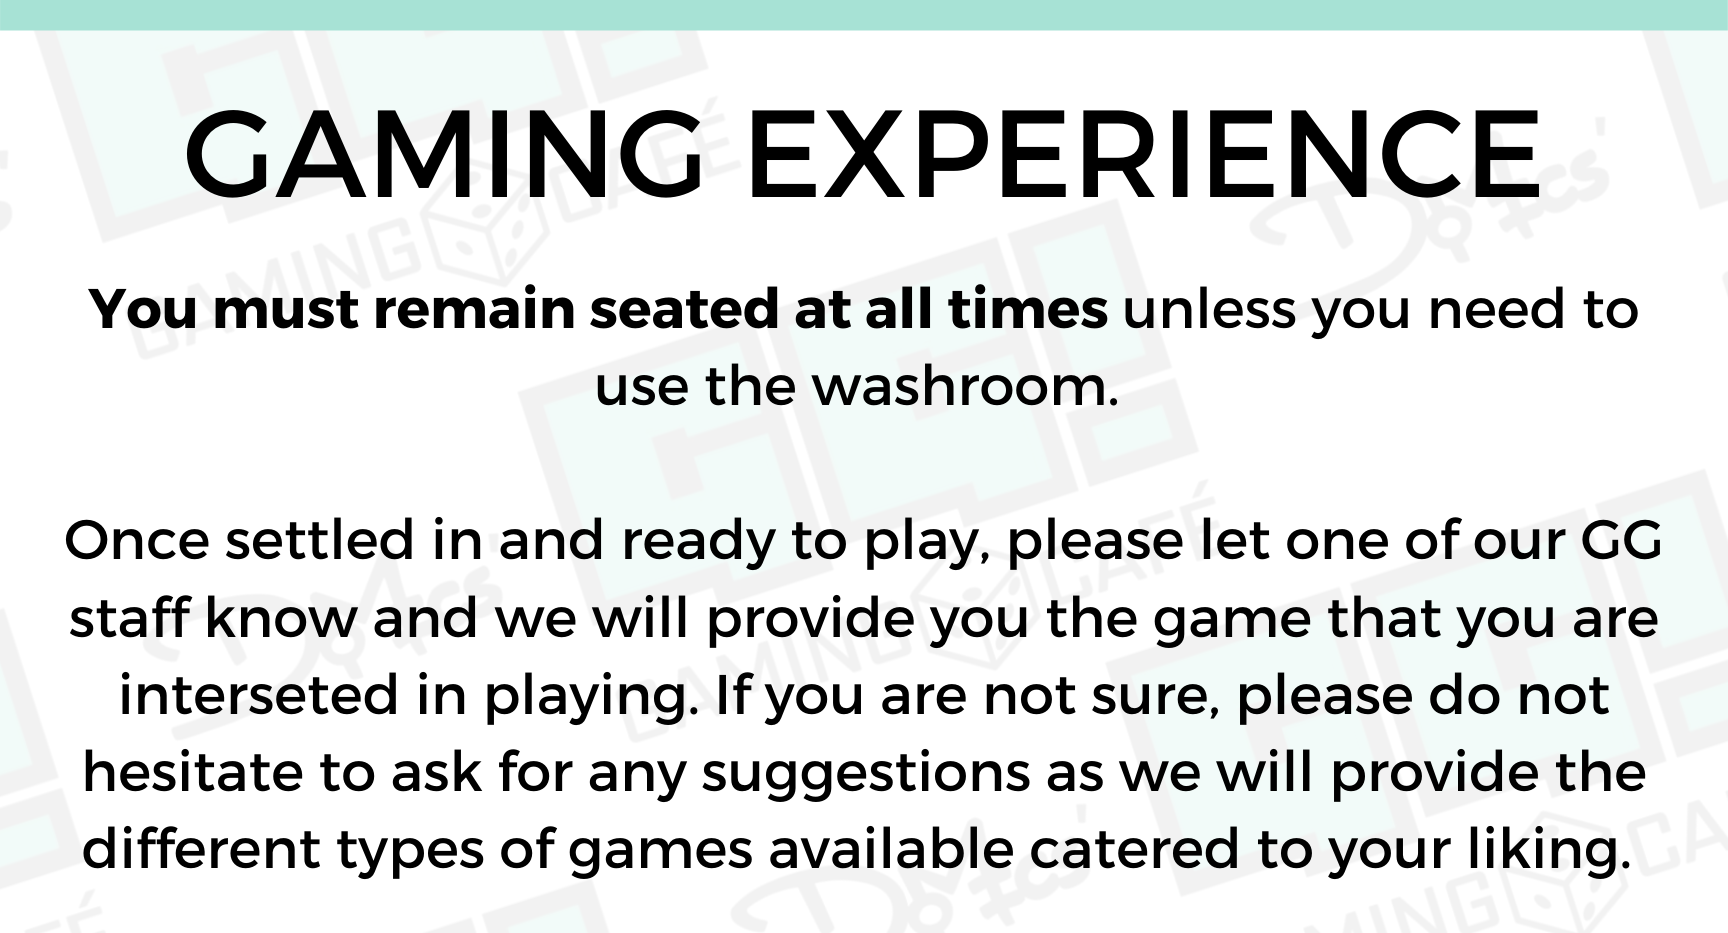 2.Gaming Experience